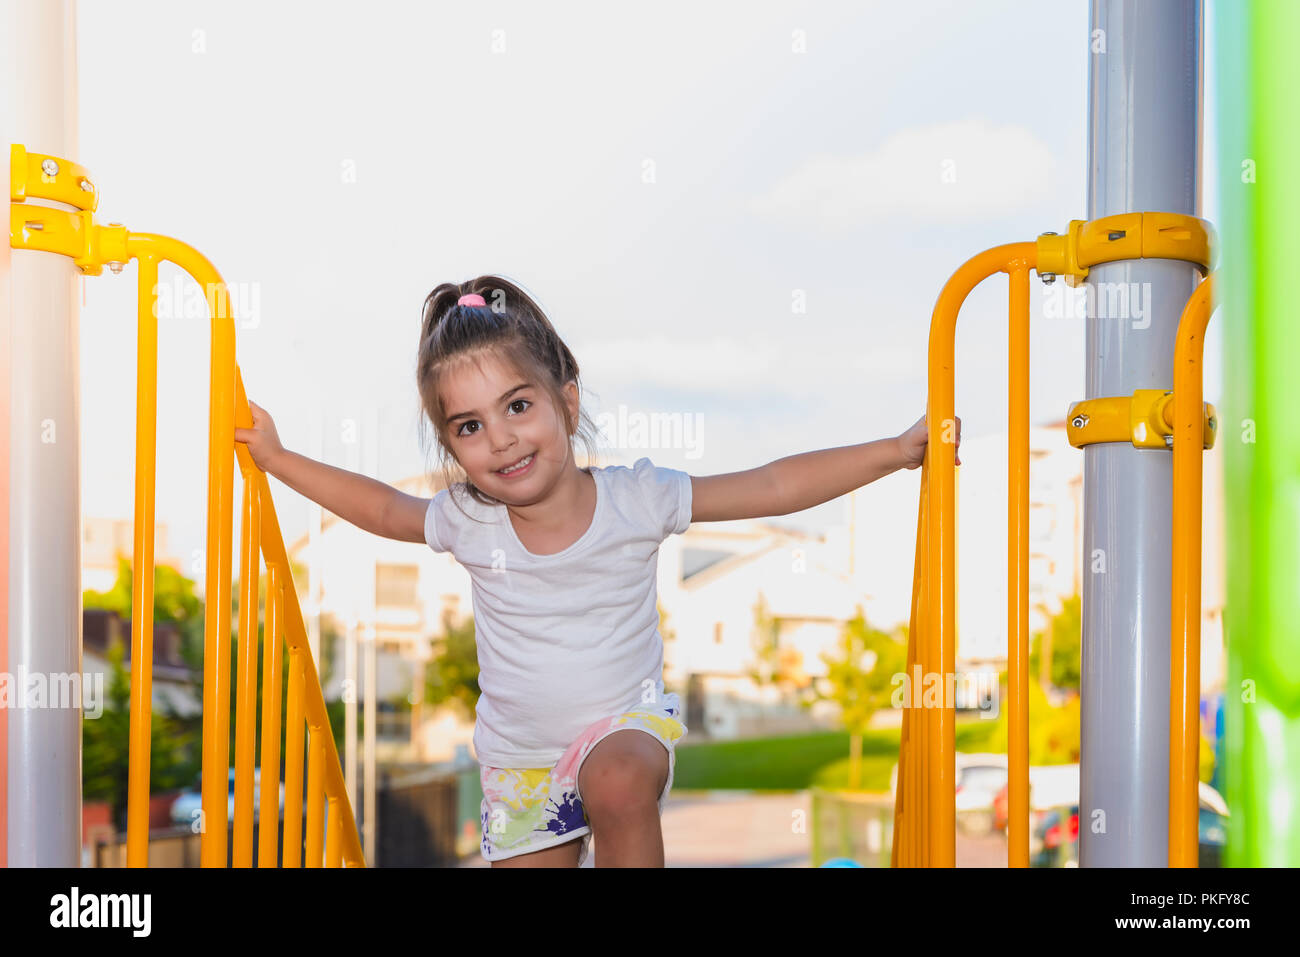 Back side view of cute little girl tying to climb from metallic stairs bars on playground - Stock Image